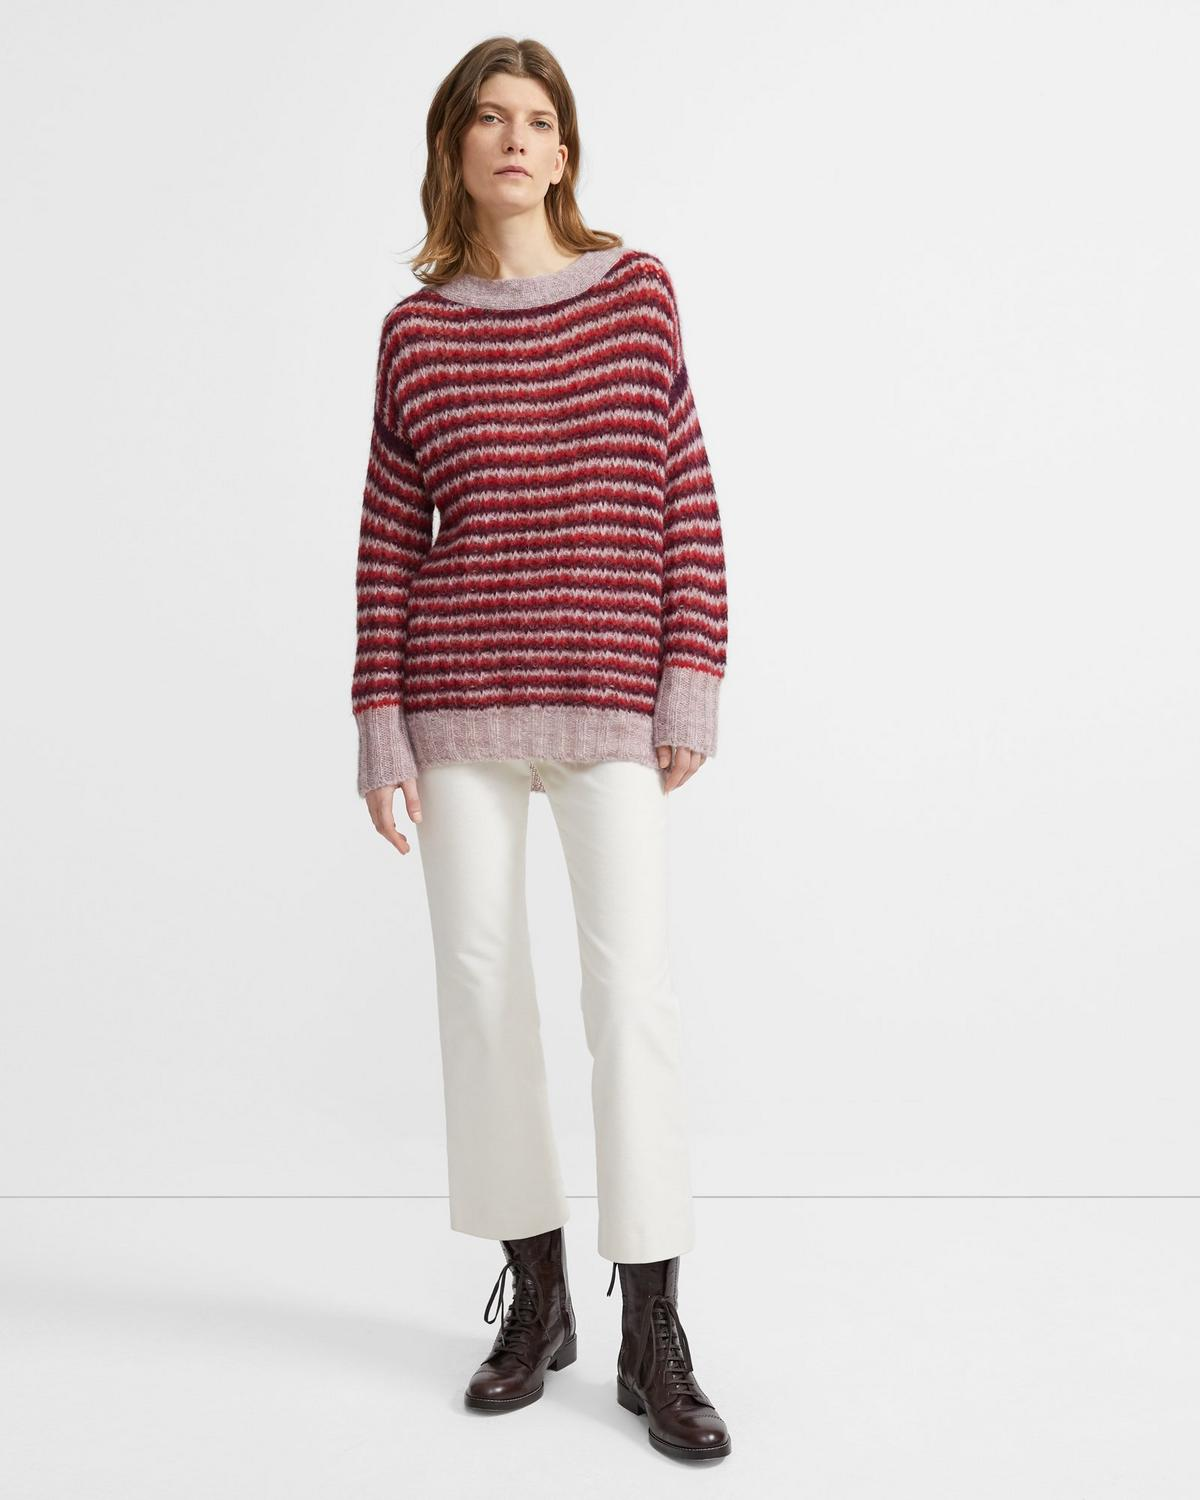 Alpaca Striped Pullover 0 - click to view larger image